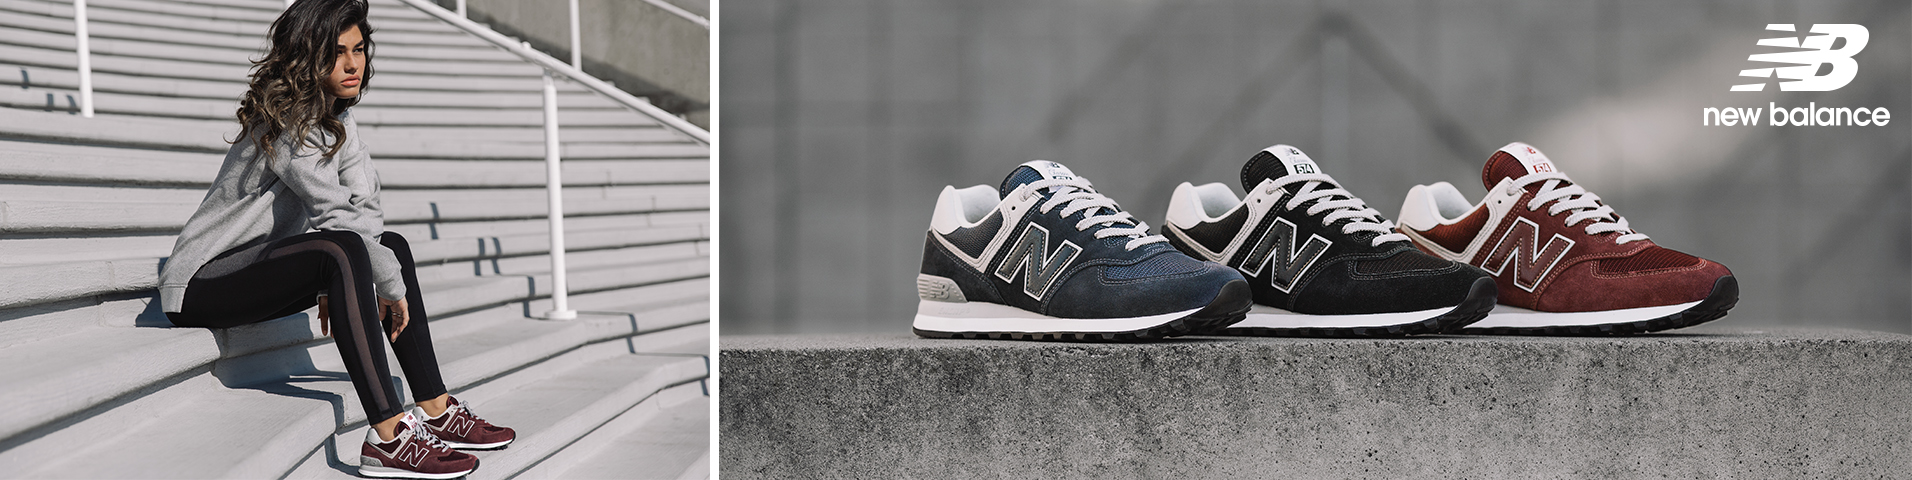 New Balance 696 Moda casual